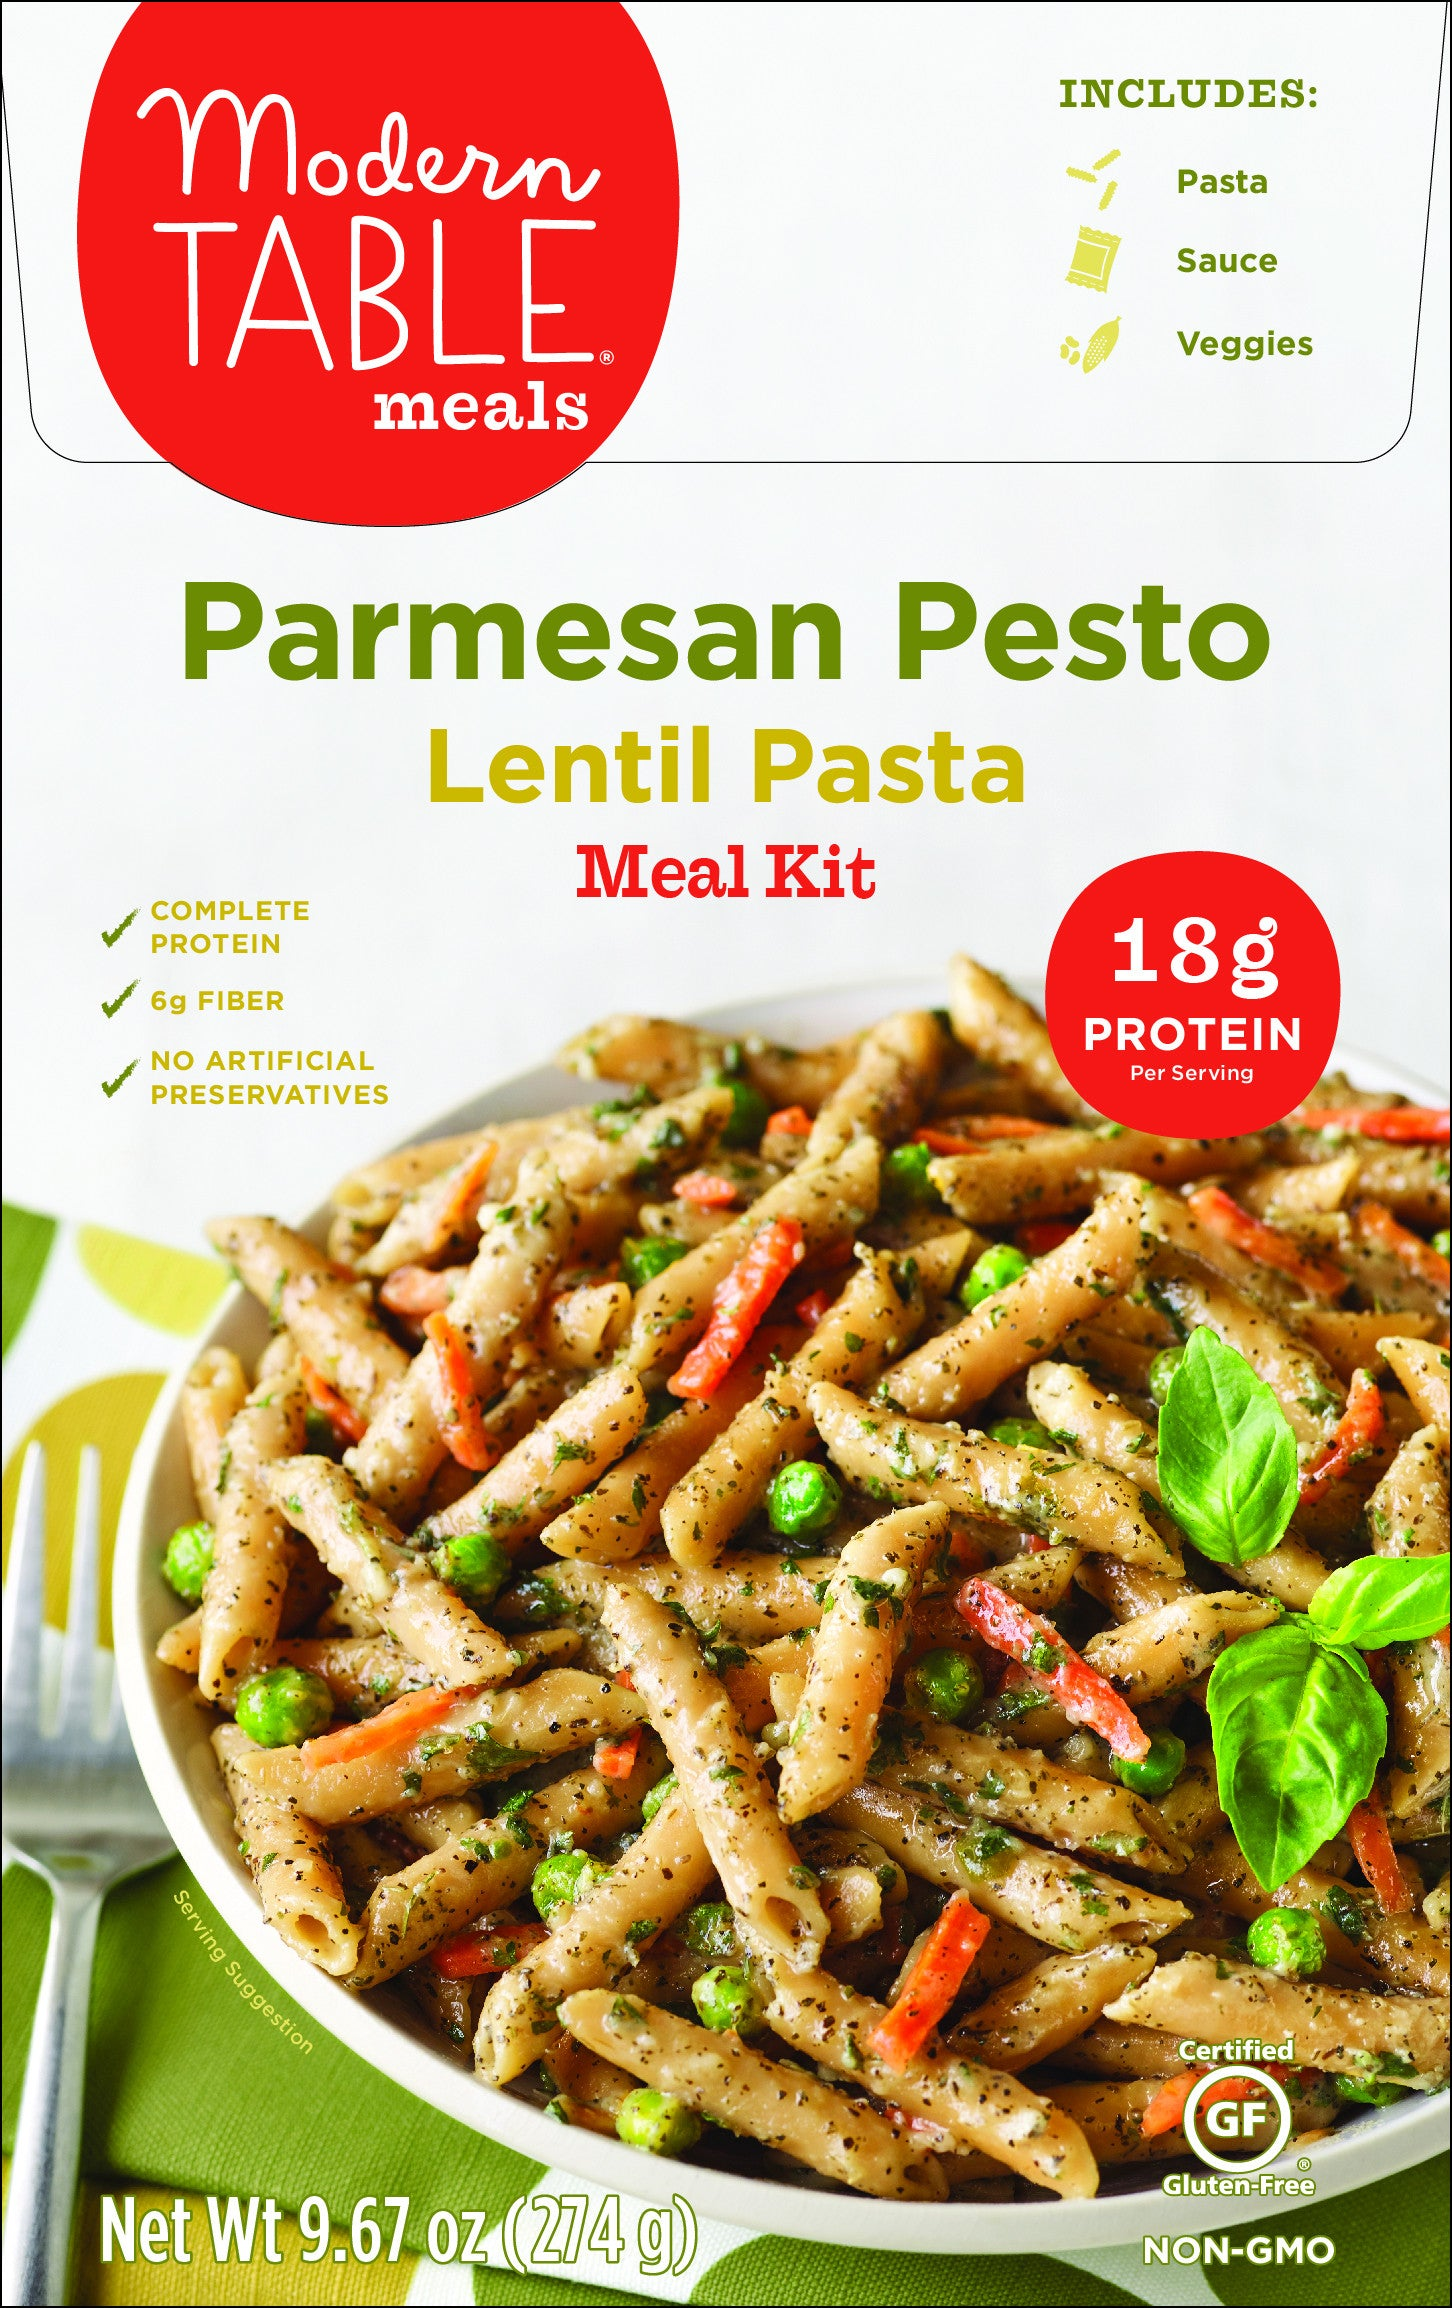 NEW! Parmesan Pesto